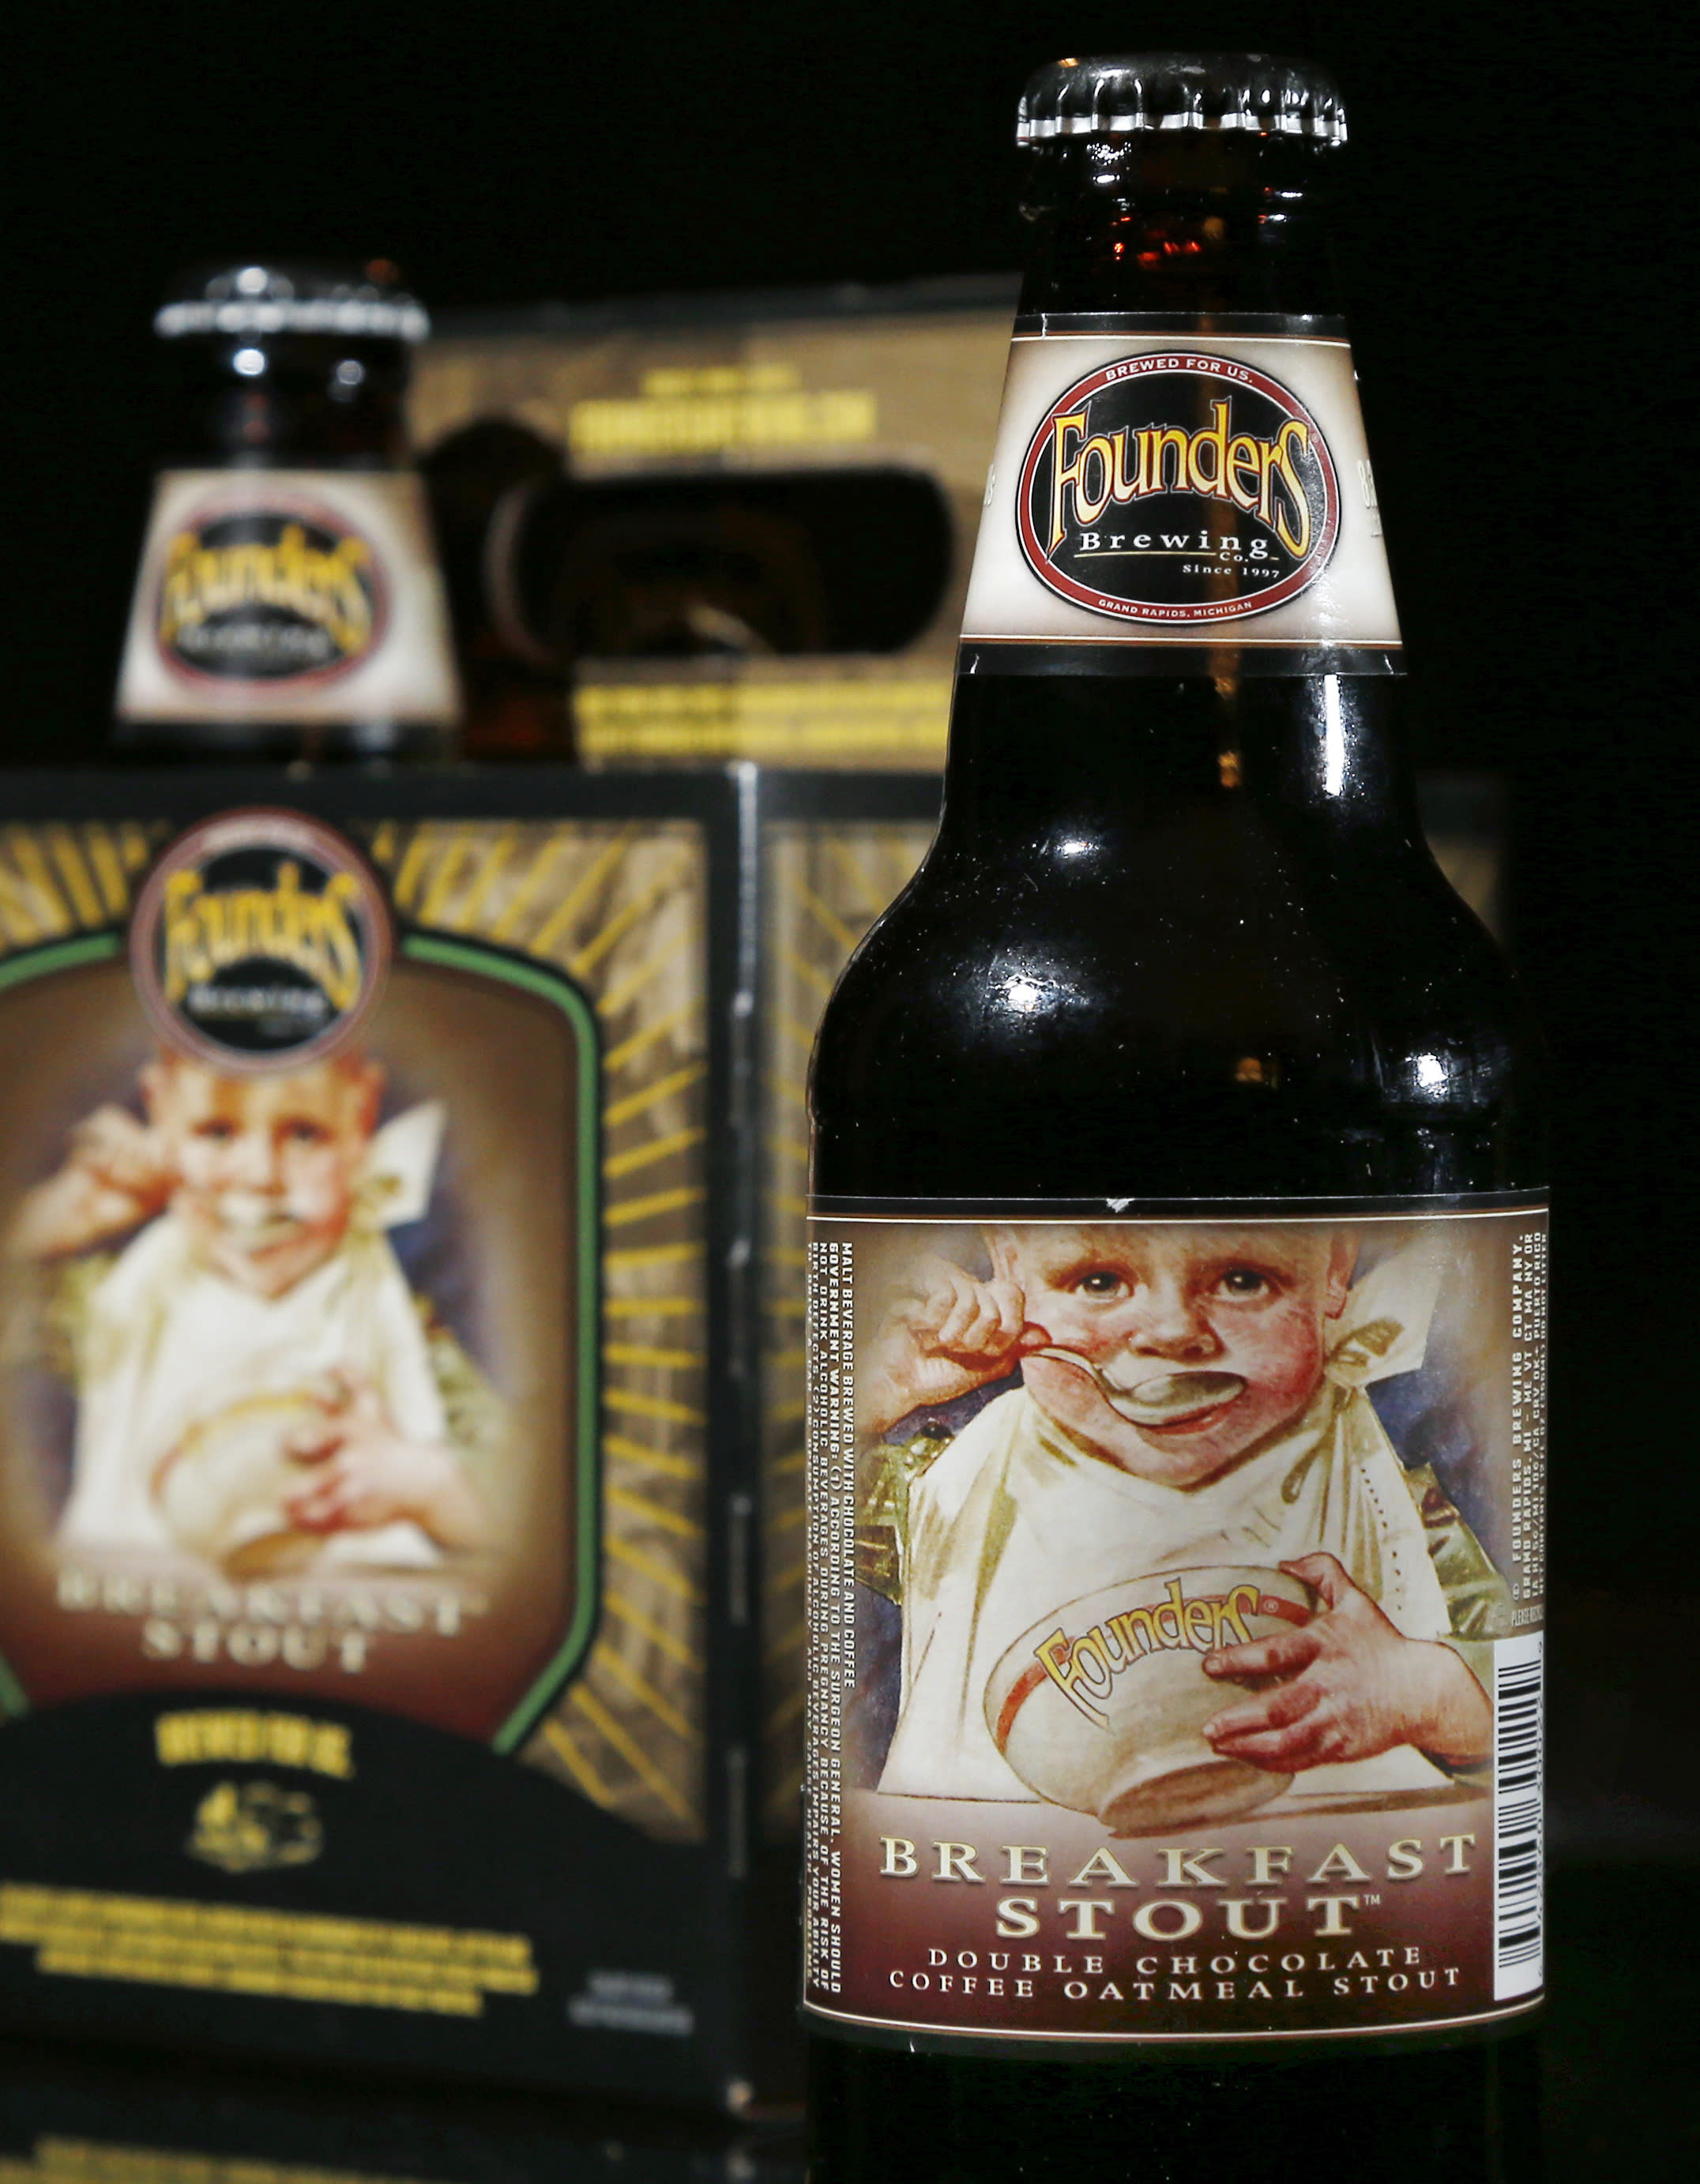 New Hampshire governor blocks baby pictures on beer bottles